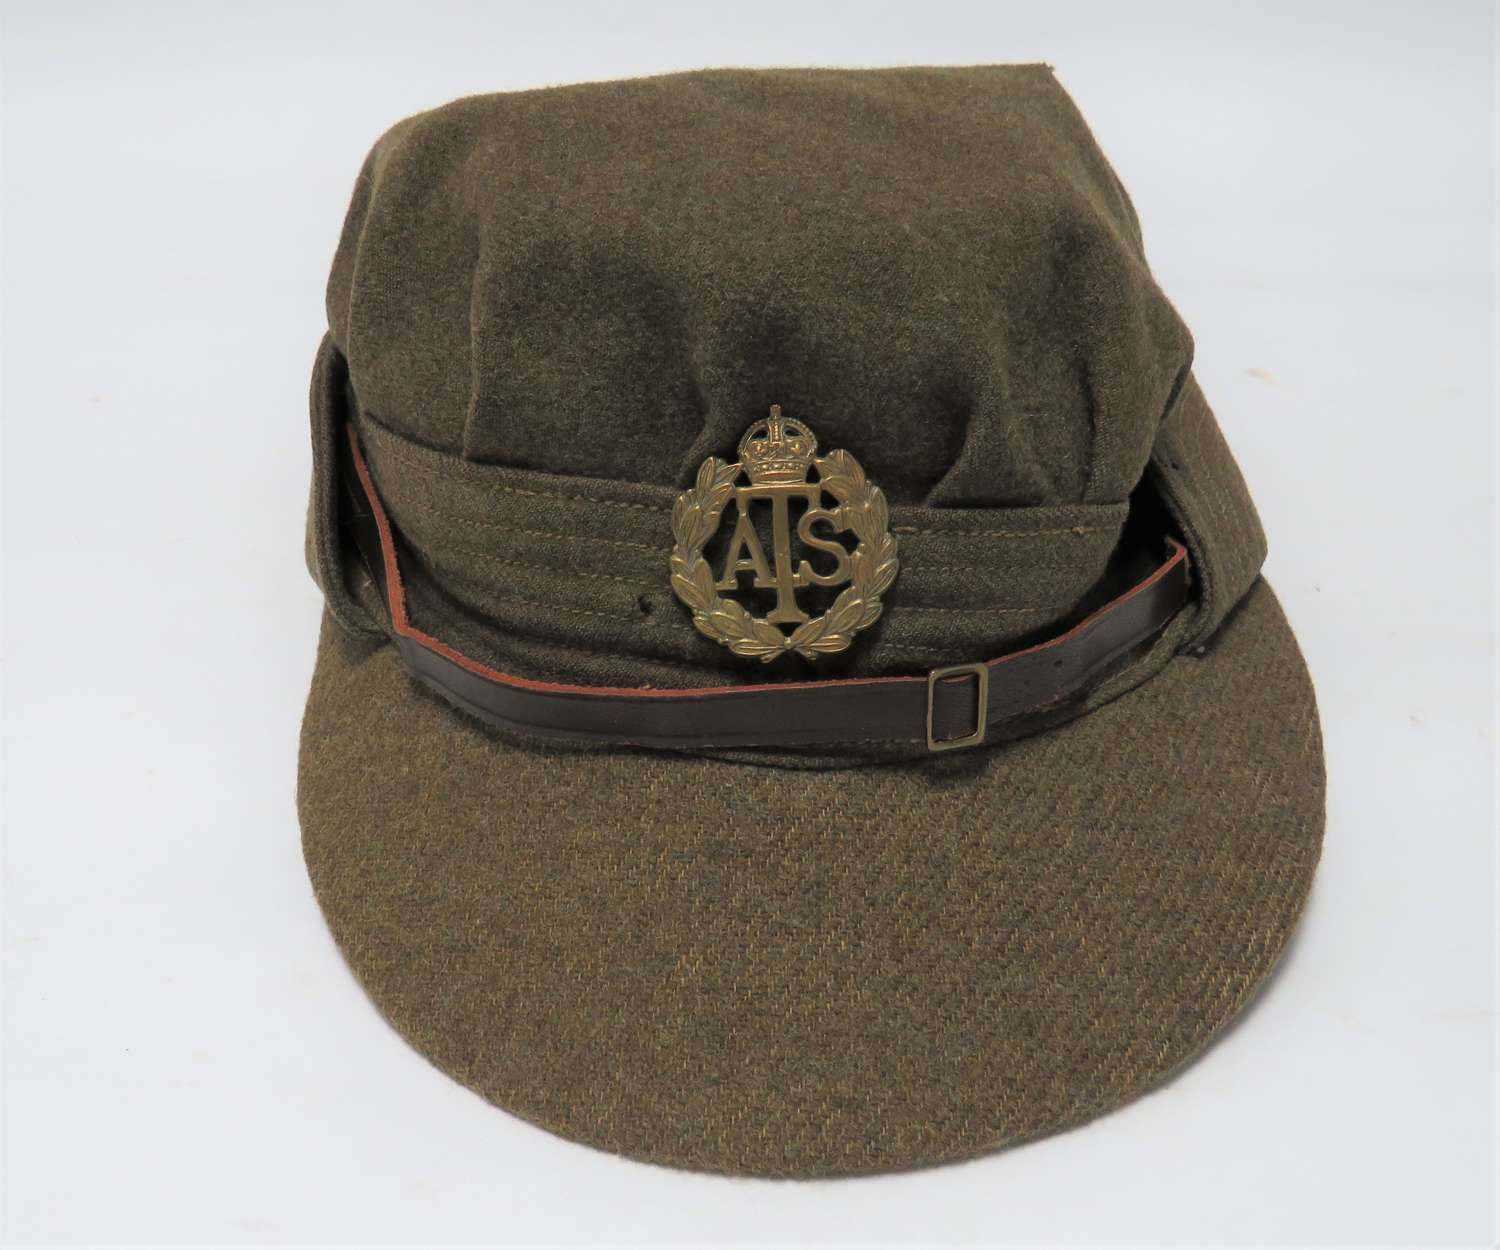 WW2 A.T.S Issue Other Ranks Service Dress Cap